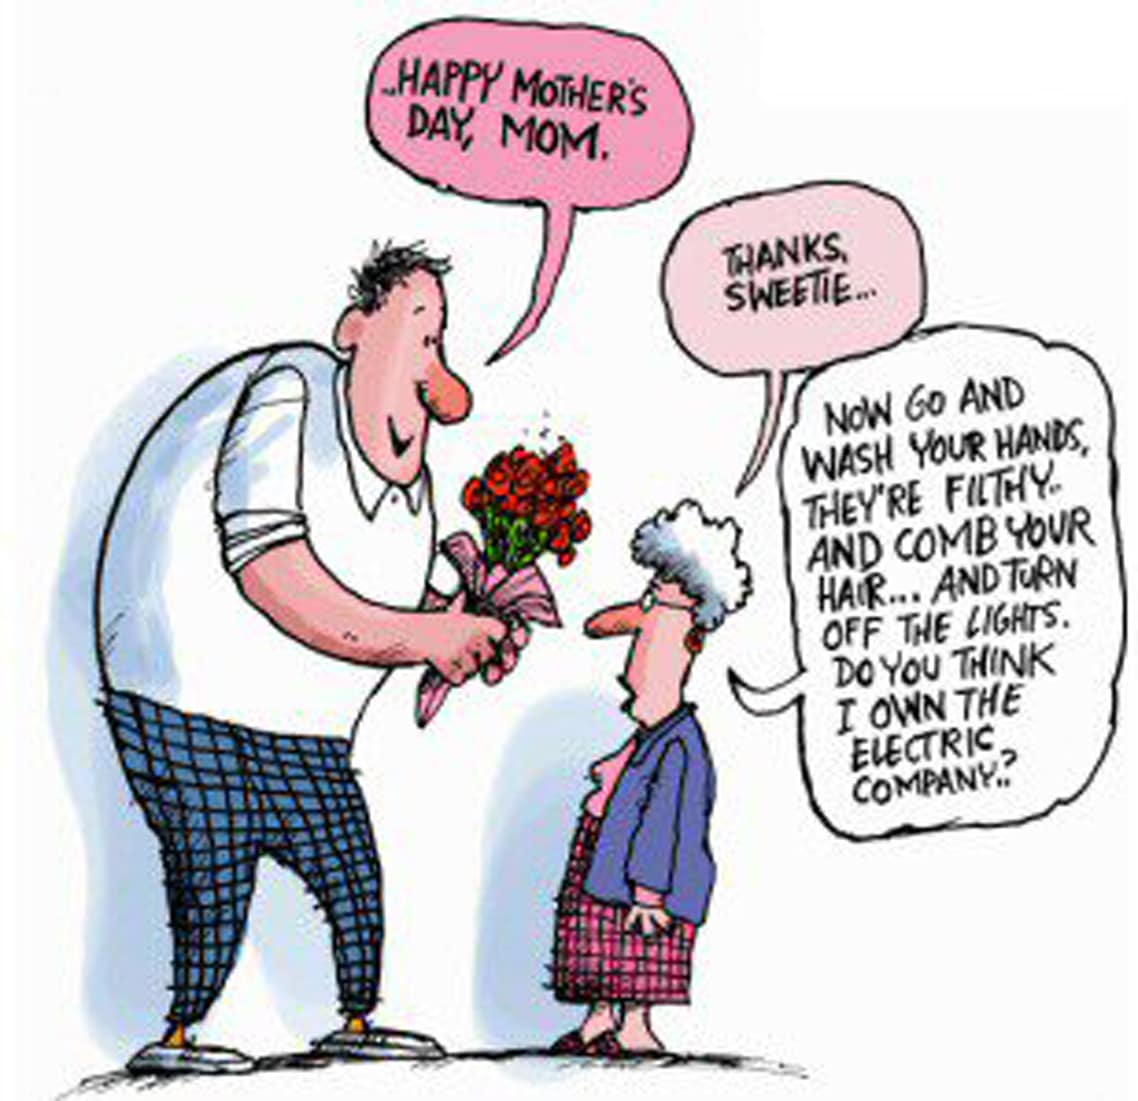 Funny Mother's Day Poem Wishes